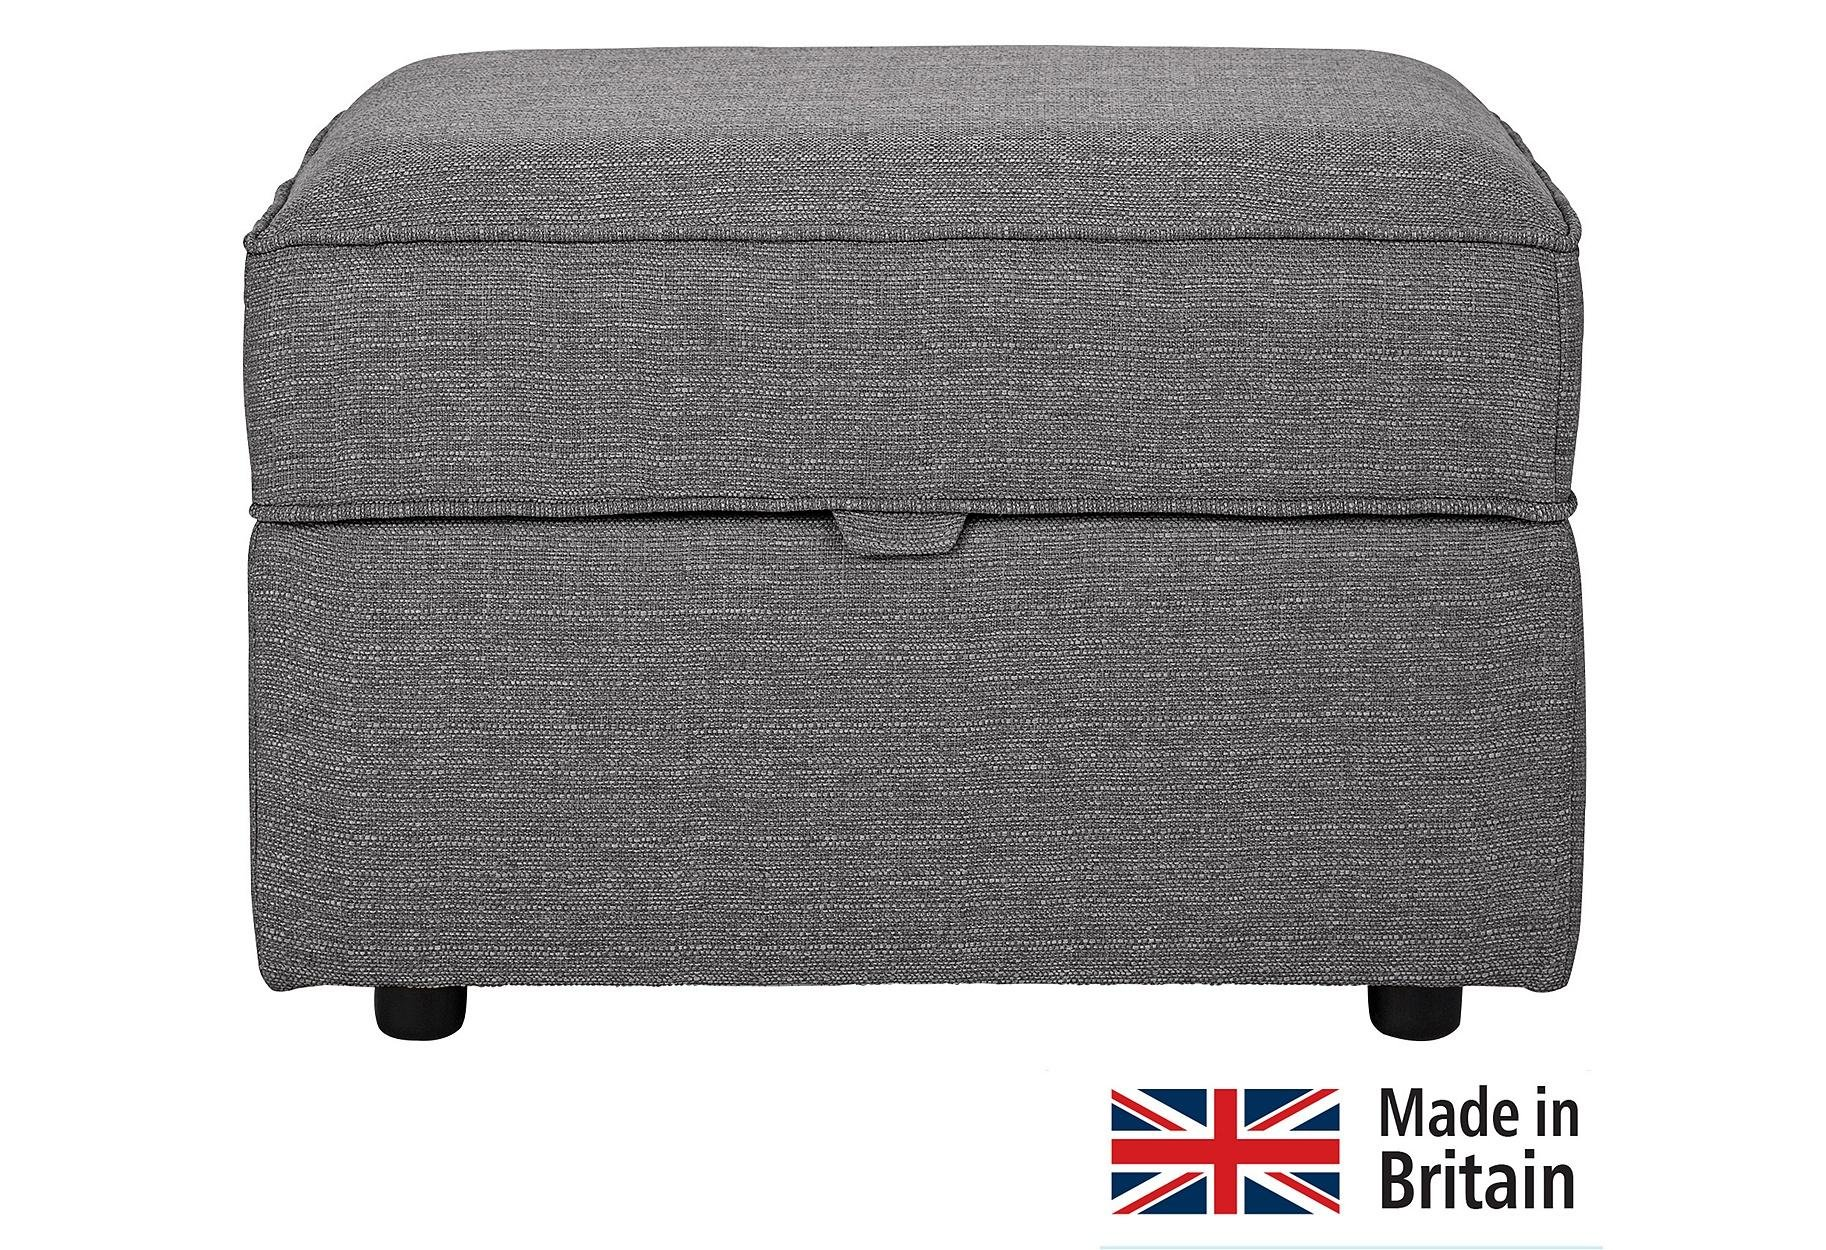 Collection Ashdown Fabric Storage Footstool - Grey  sc 1 st  Argos & Buy Collection Ashdown Fabric Storage Footstool - Grey at Argos.co ... islam-shia.org